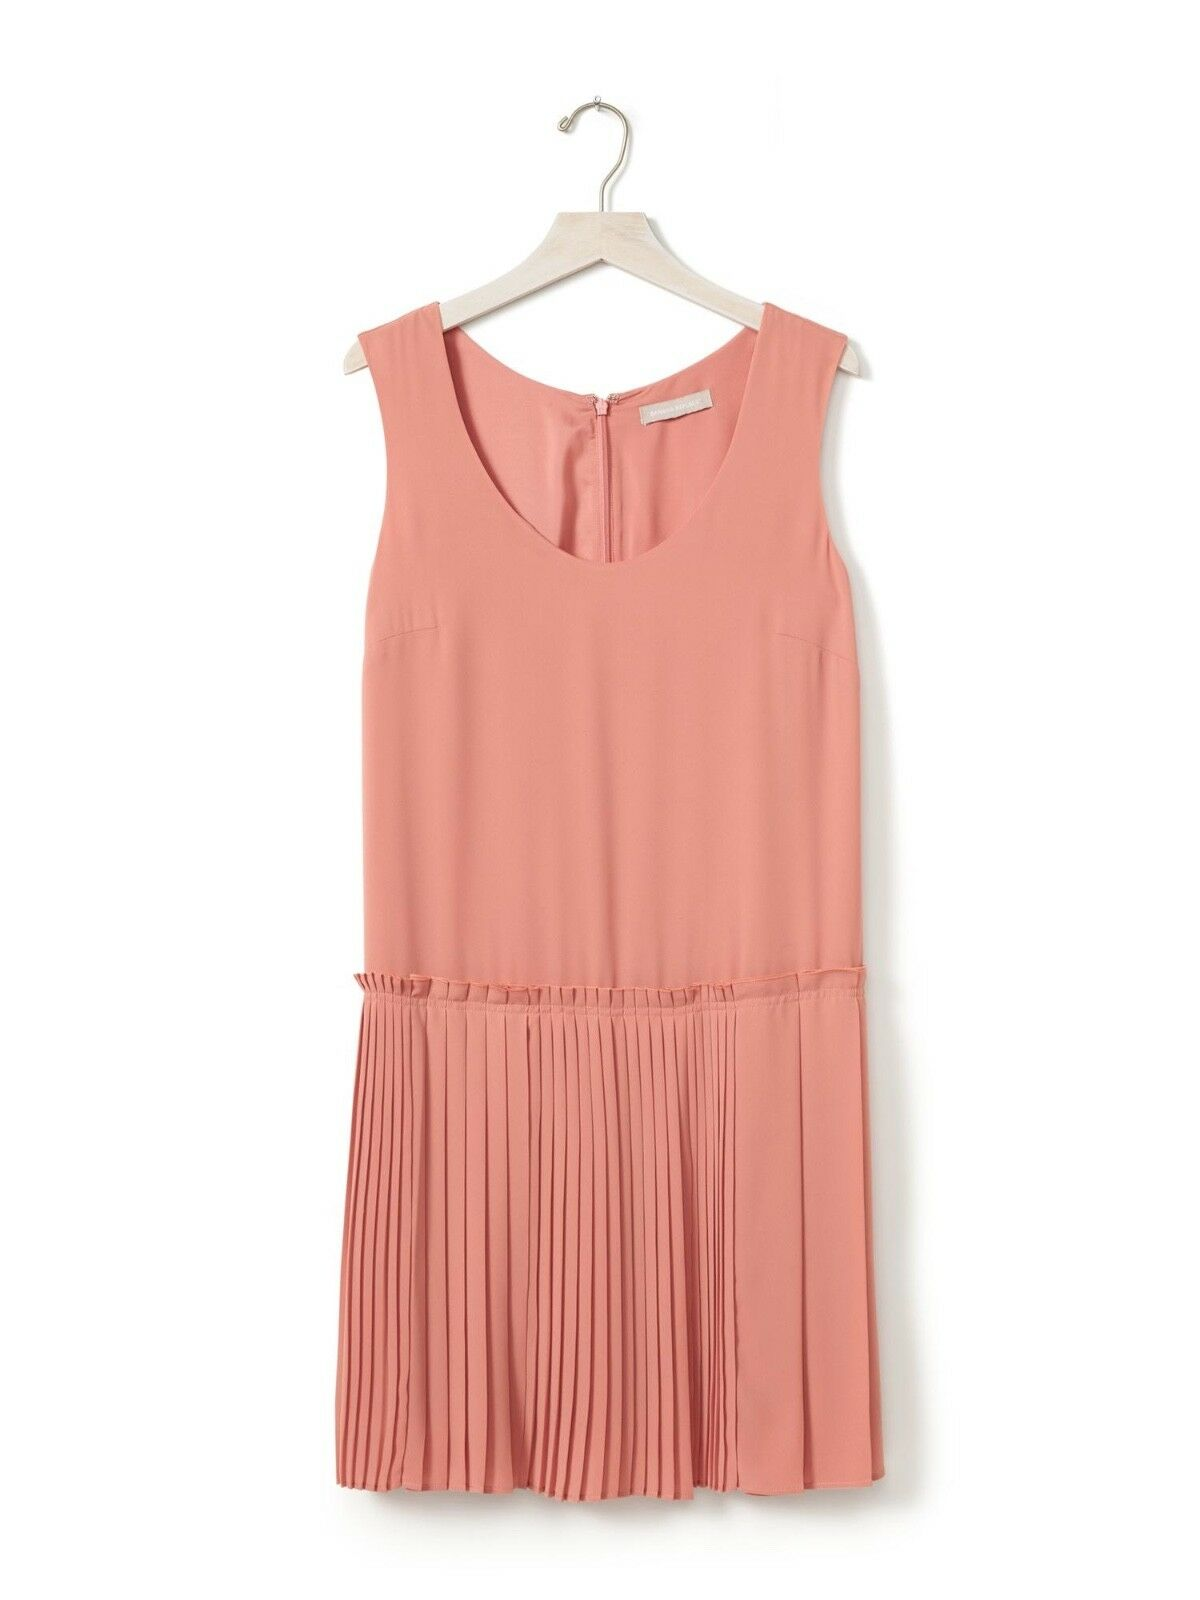 Banana Republic Pink Peach Accordion Pleated Drop Waist Dress Size 0 Sleeveless